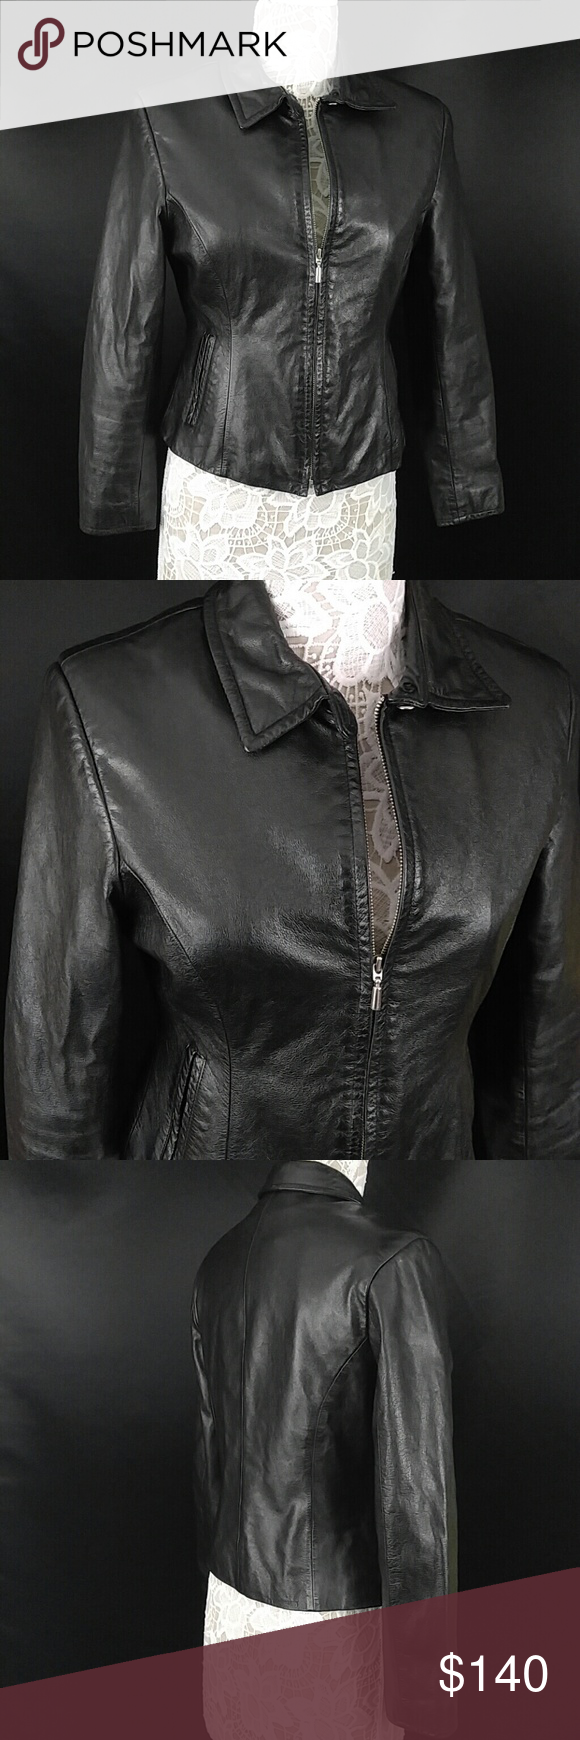 Wilson's leather coat Amazing like new condition!!! 100